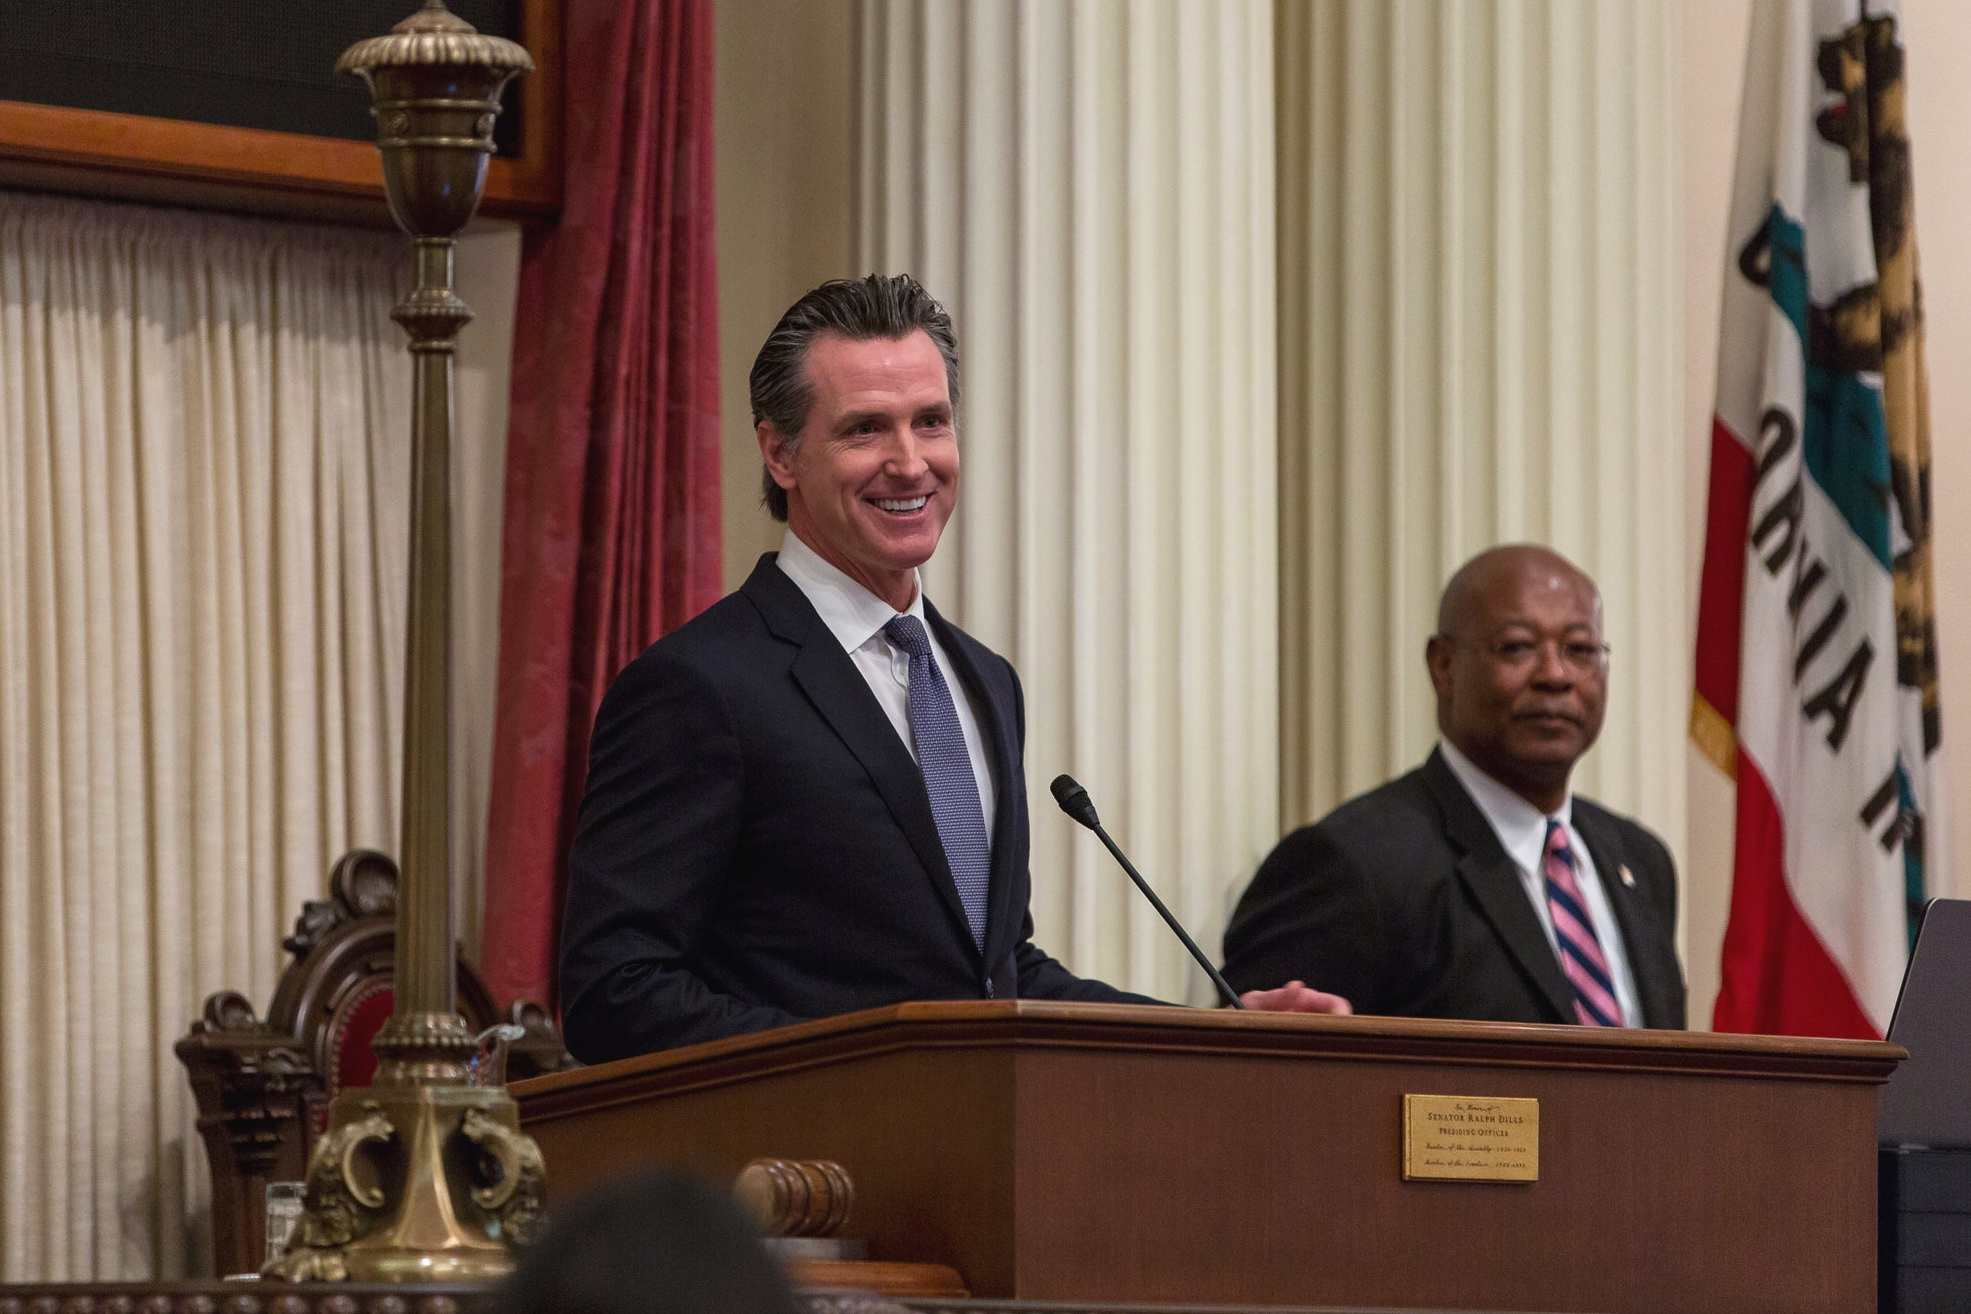 CA Governor Gavin Newsom